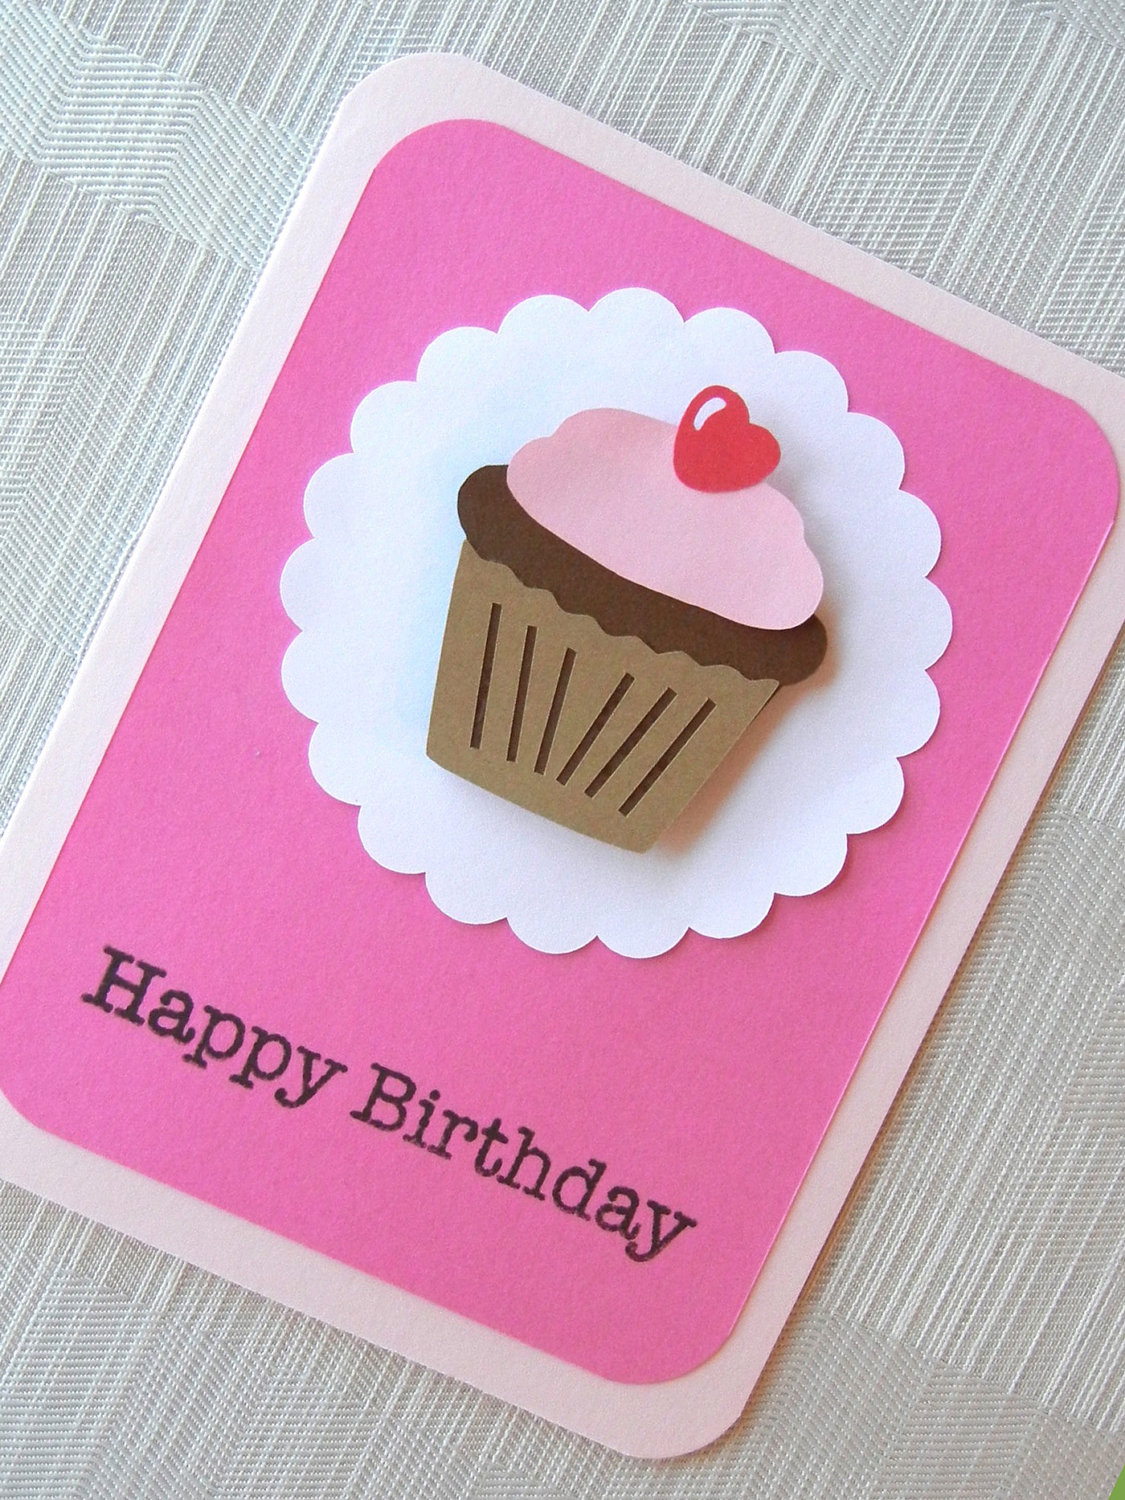 Easy diy birthday cards ideas and designs for Homemade diy